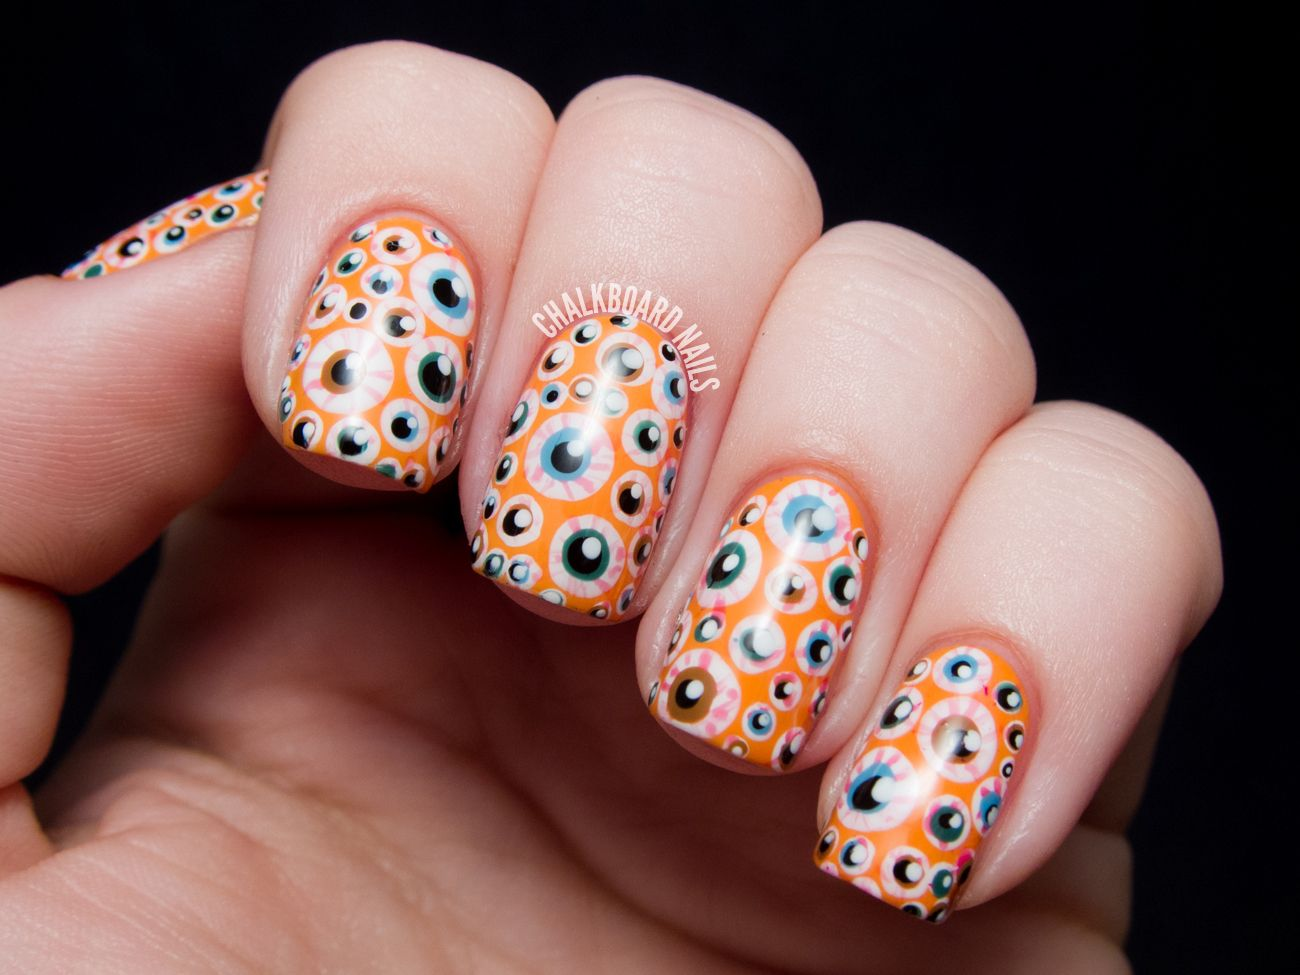 Over the Top Eyeball Nails - Halloween Nail Art | Chalkboard nails ...